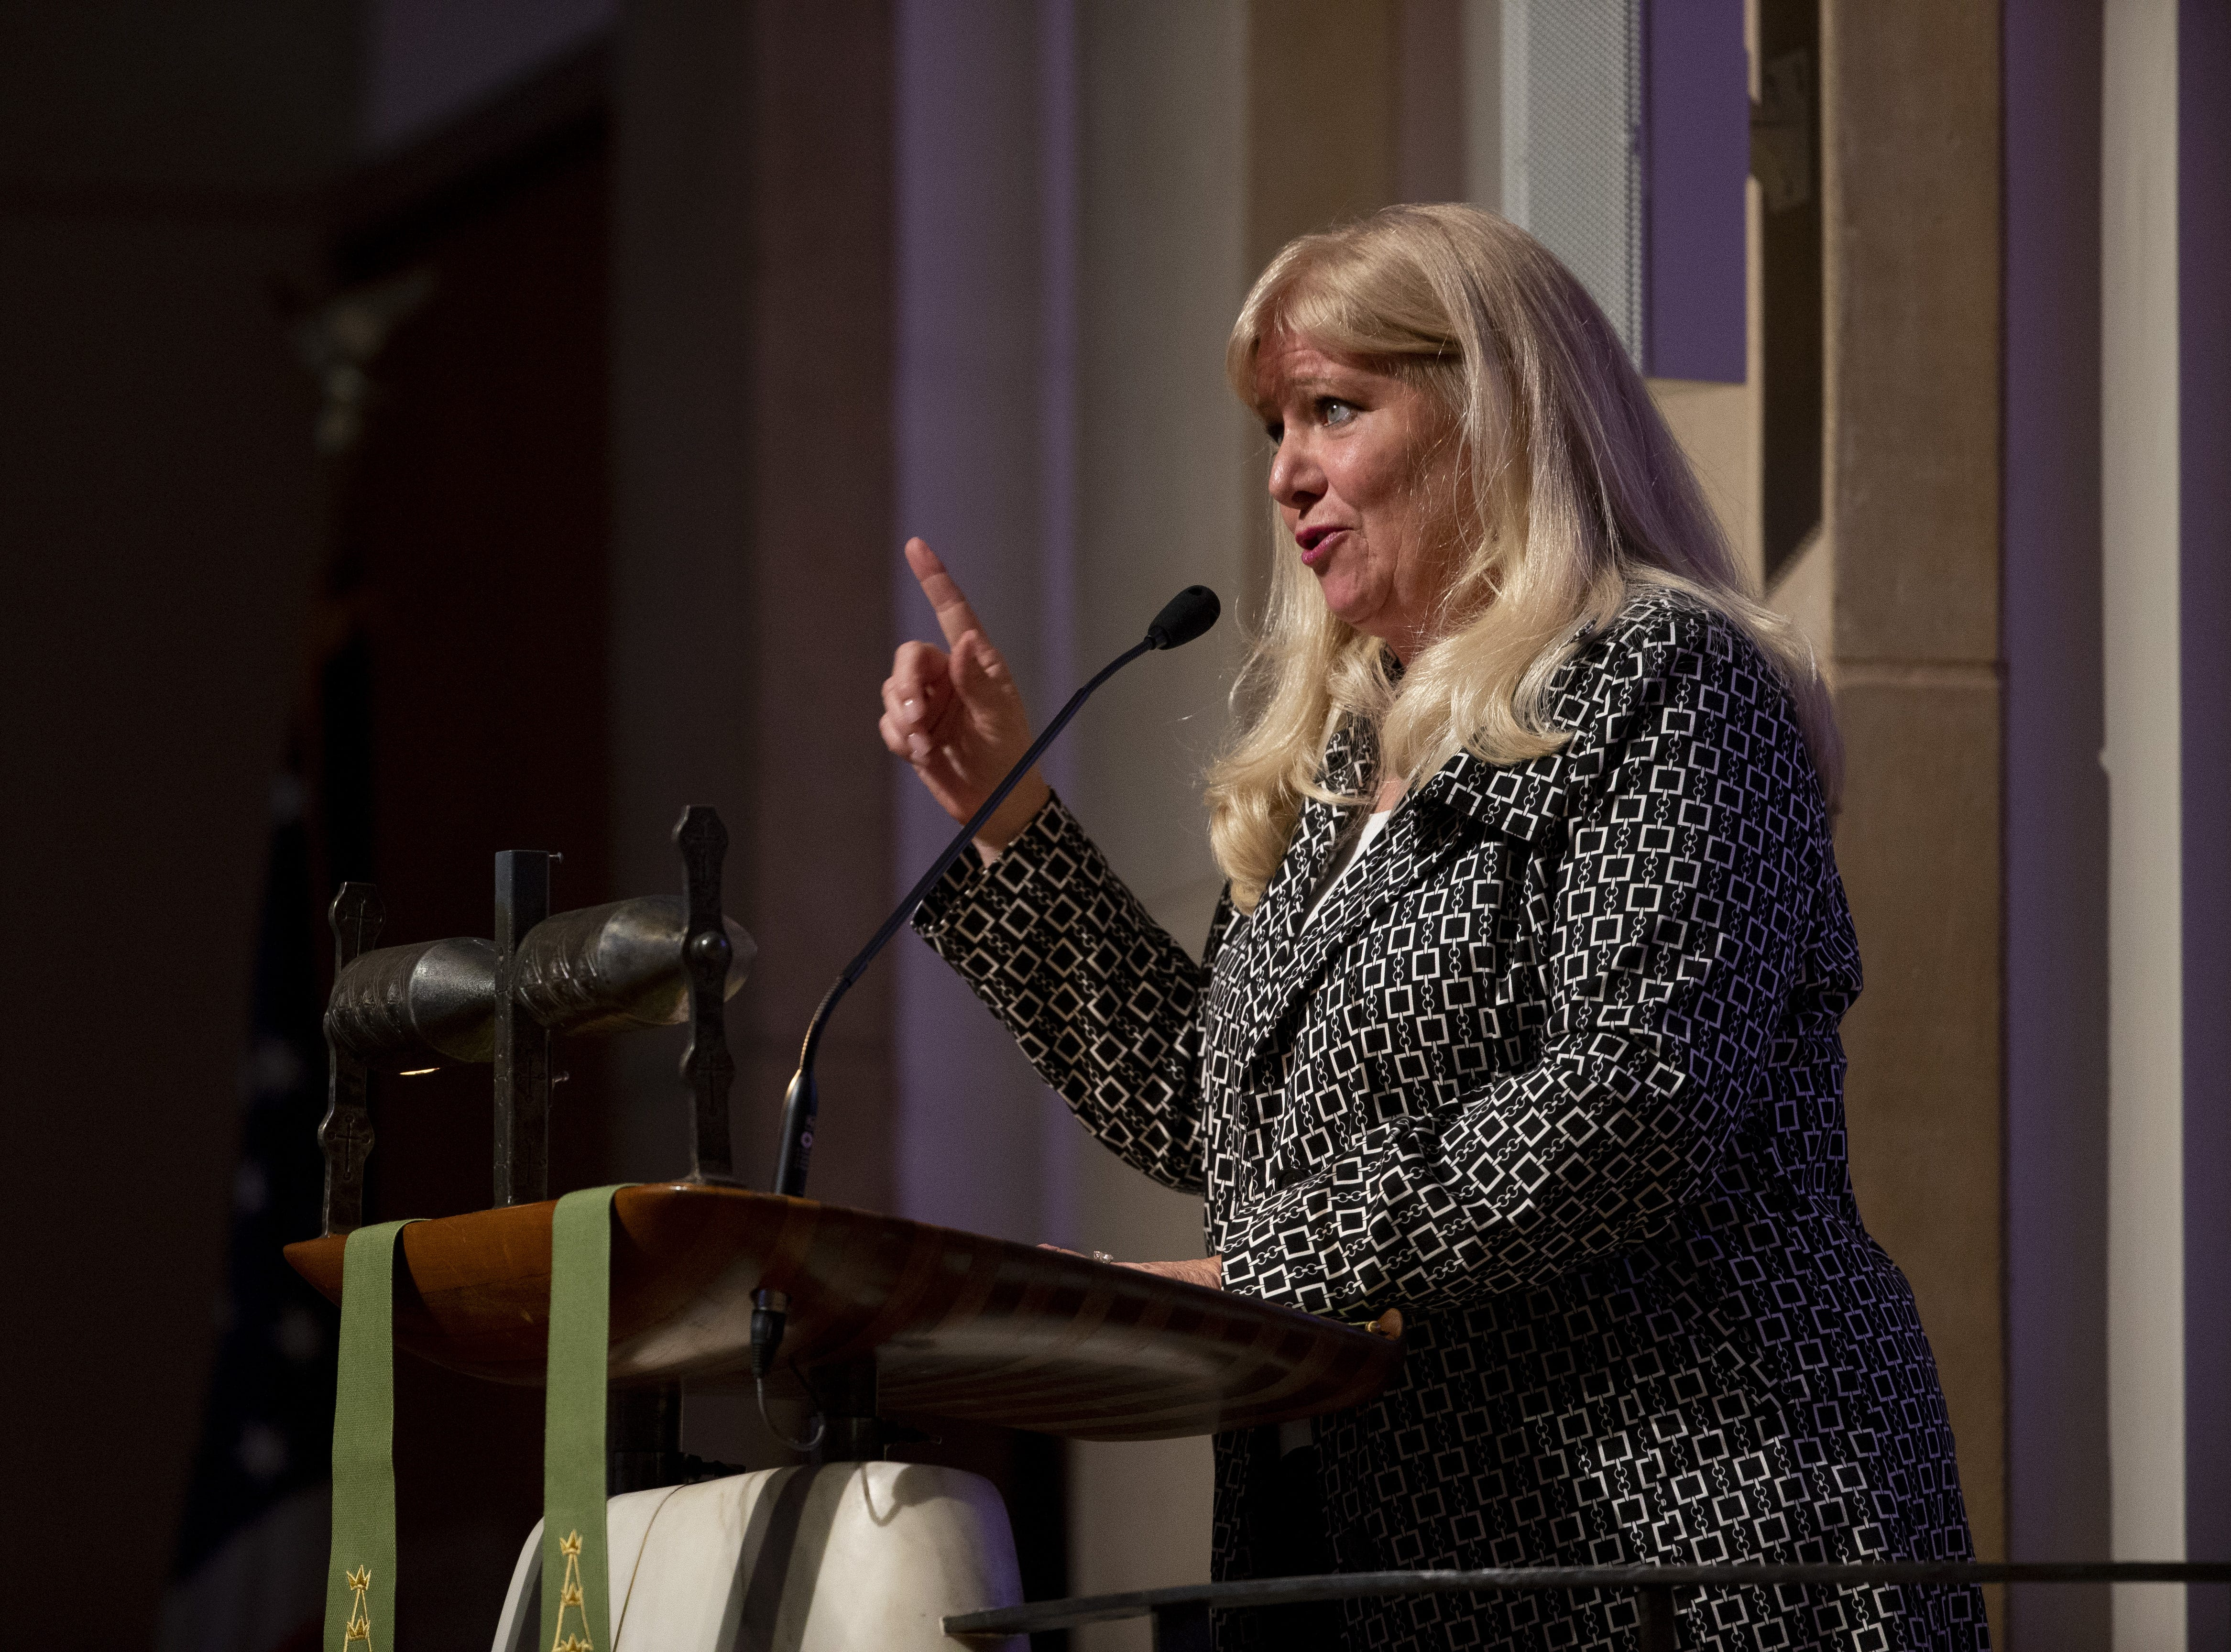 Christi Warren-Beyer speaks during memorial services for her mother, Carolyn Warner, at First United Methodist Church in on October 25, 2018. Warner was the 15th Superintendent of Public Education for the state of Arizona and nearly became the state's first female governor in 1986.